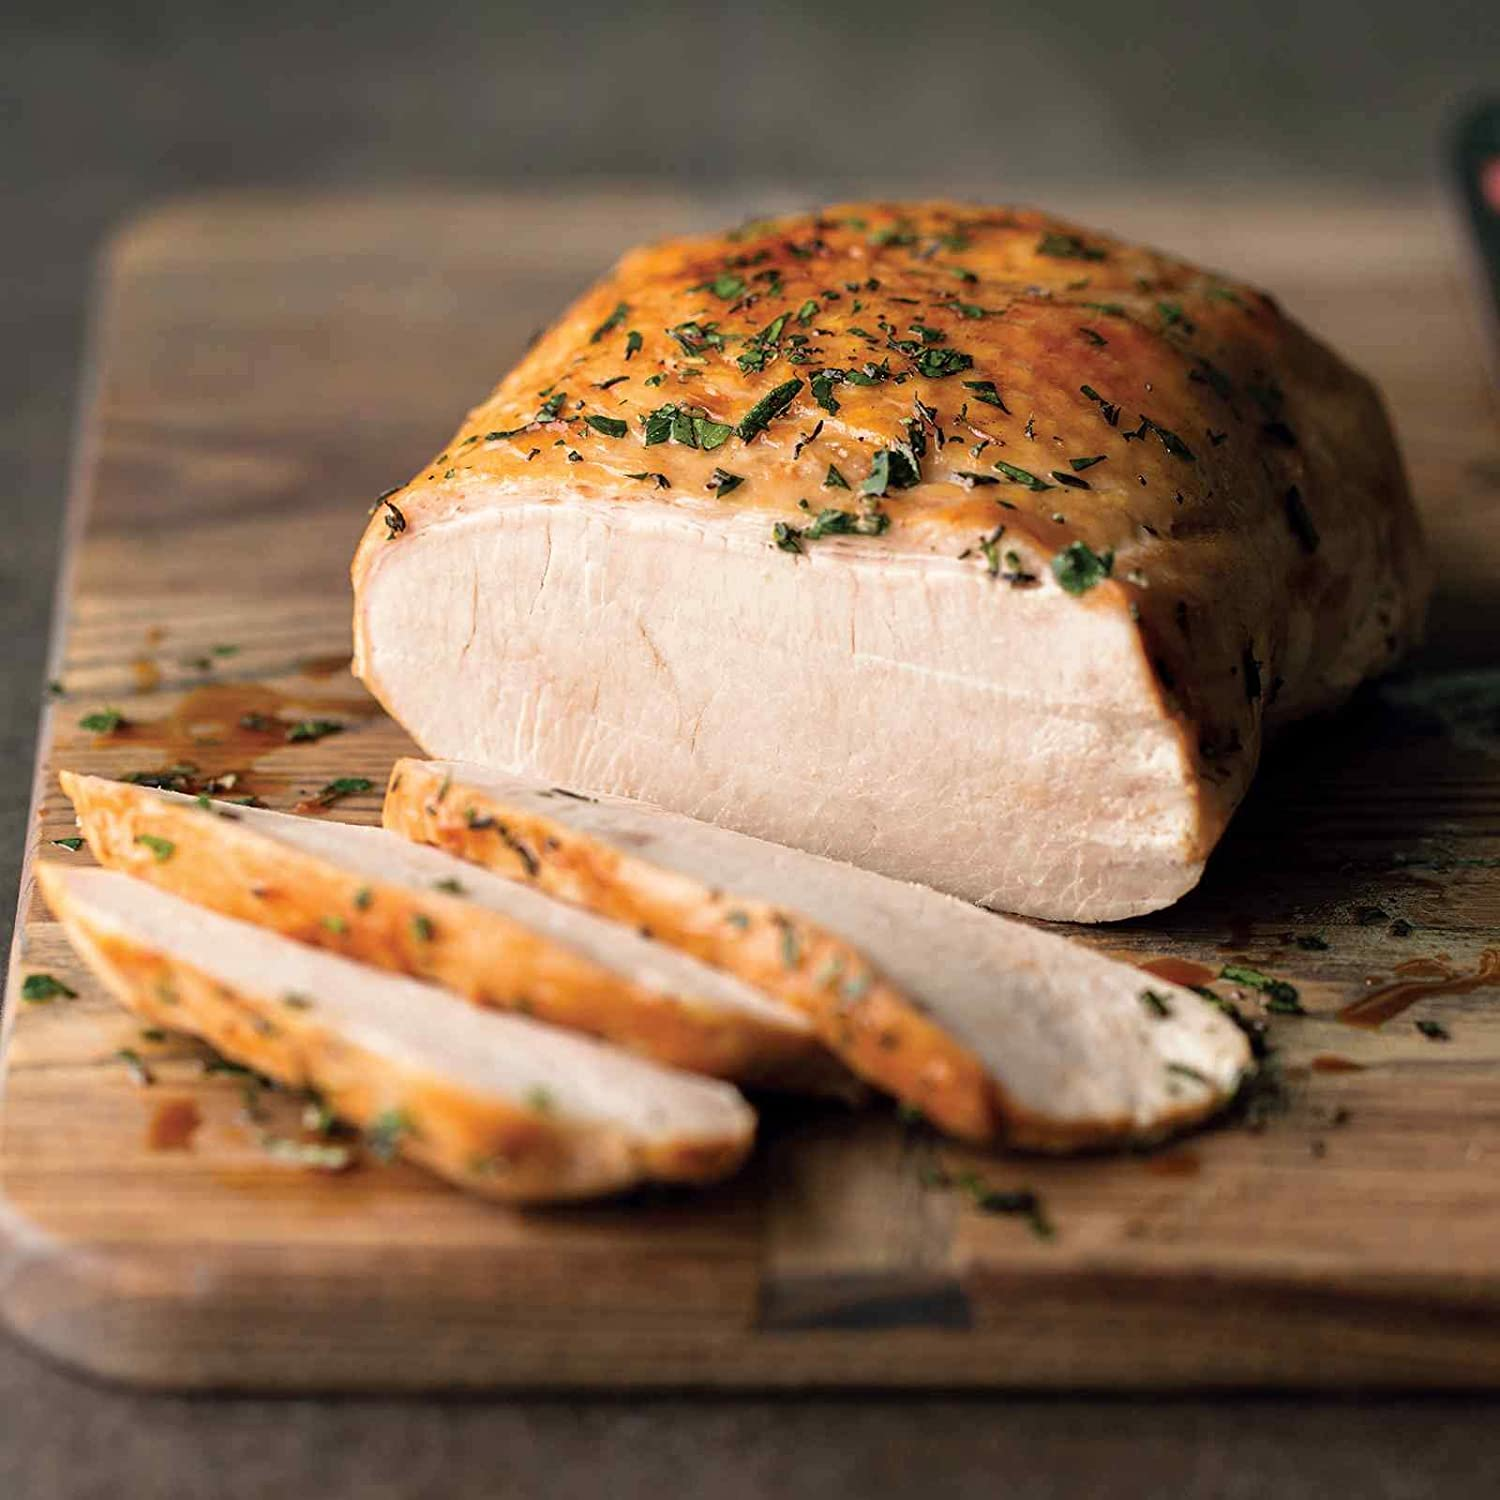 Omaha Steaks Home-Style Roasted Turkey Breast (1.8-Pound)